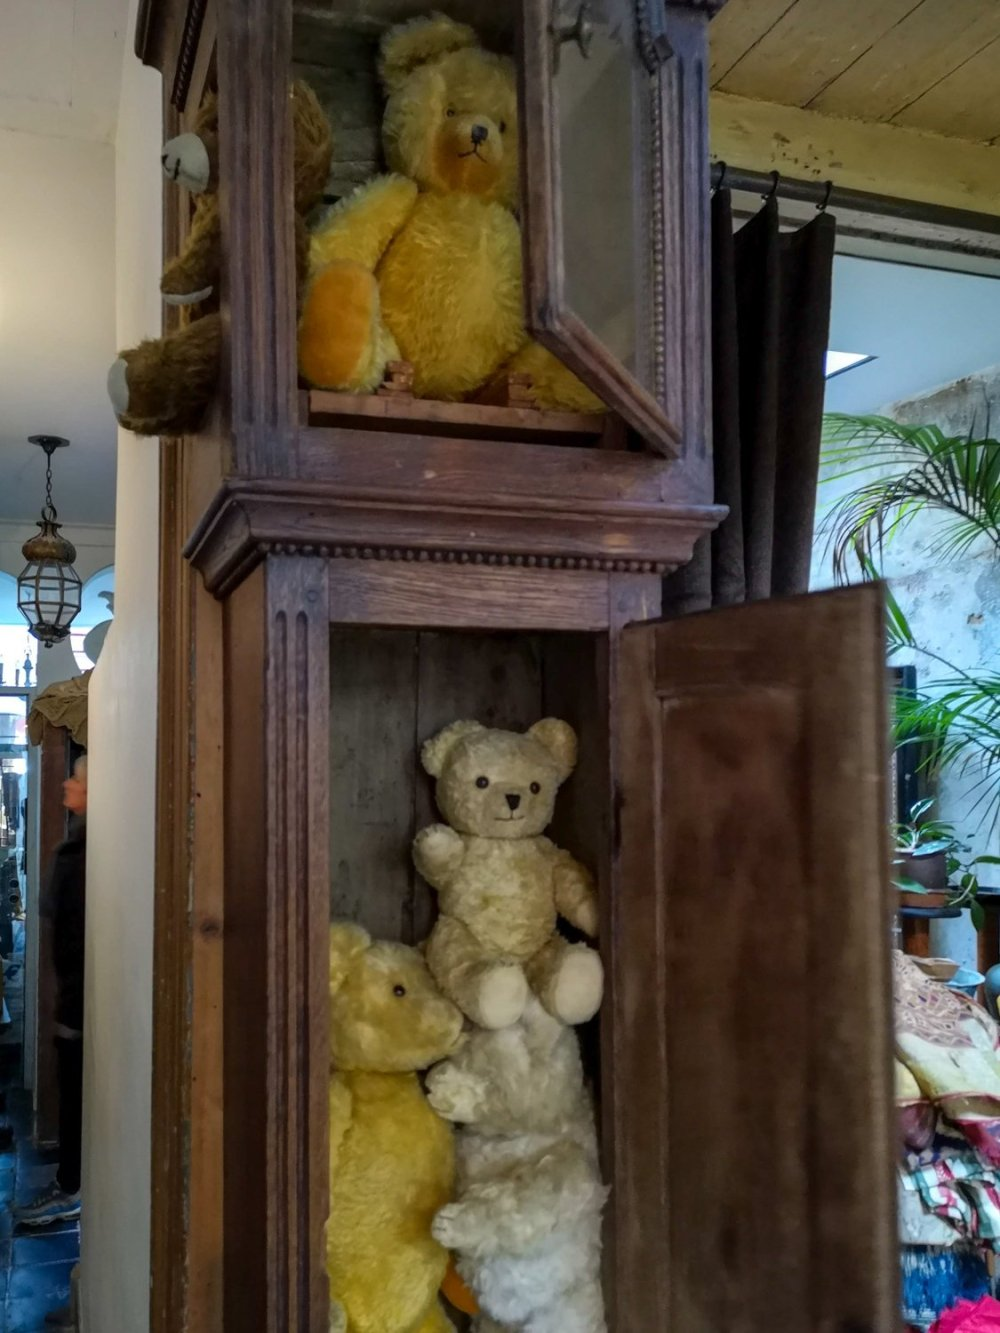 vintage teddy bears at Anterieur Leiden